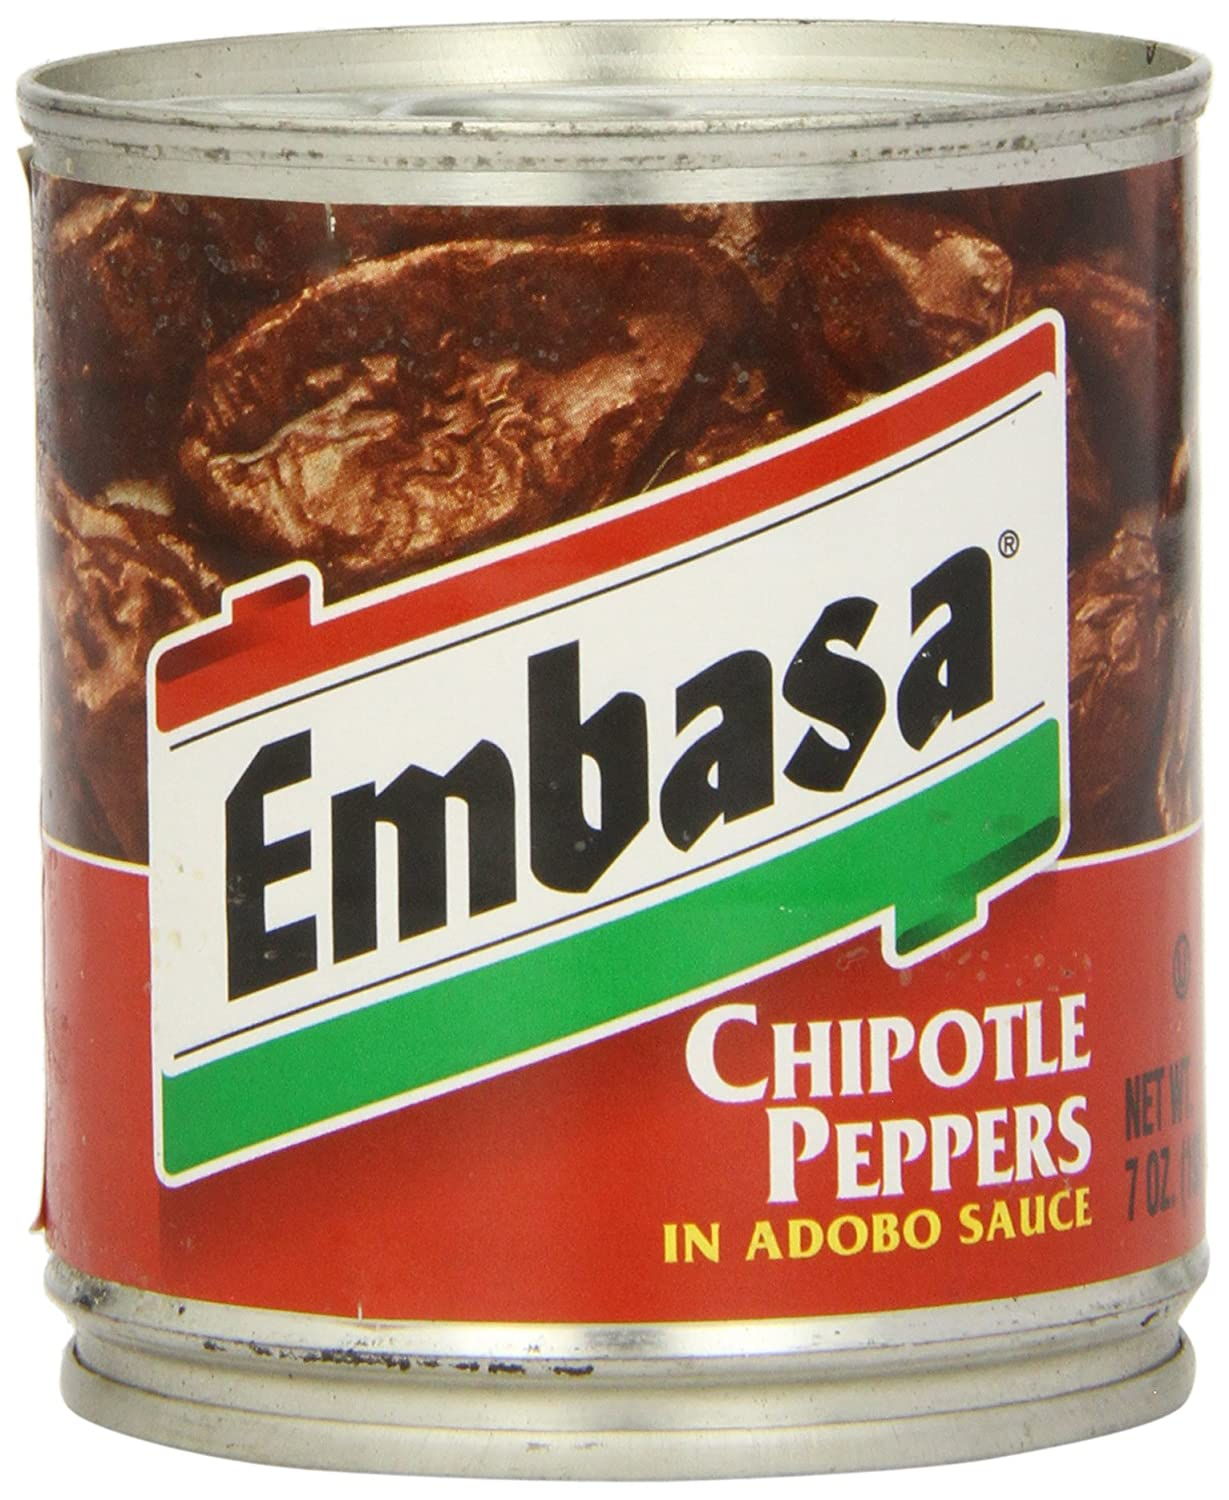 Embasa Chipotle Peppers in Adobo Sauce, 7 oz